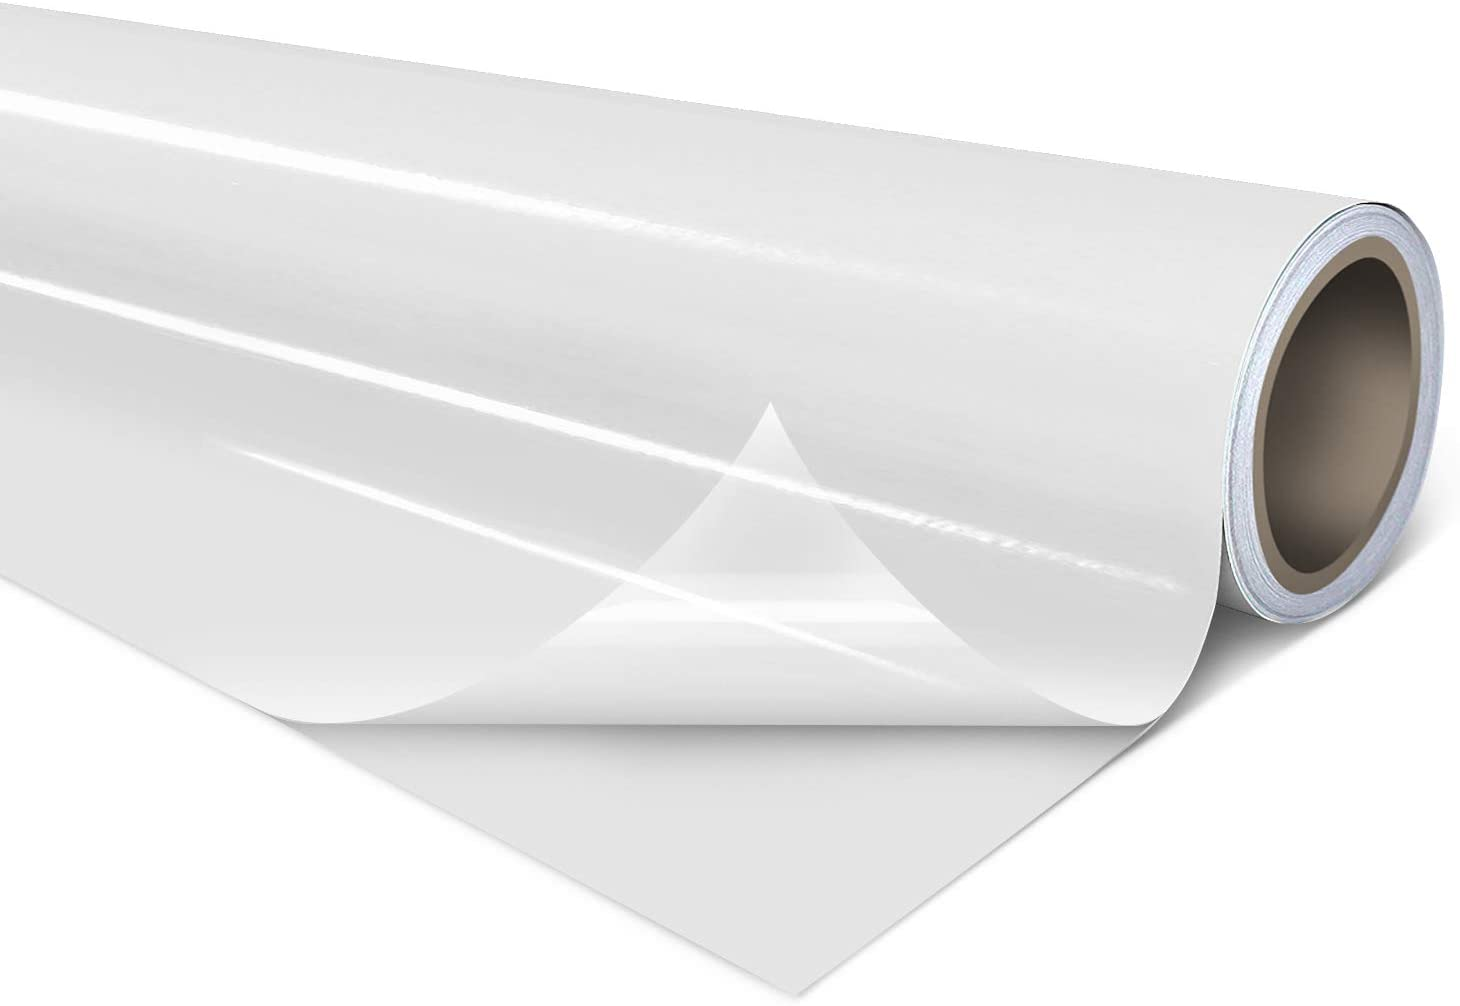 VViViD Clear Self-Adhesive Lamination Vinyl Roll for Die-Cutters and Vinyl Plotters (12